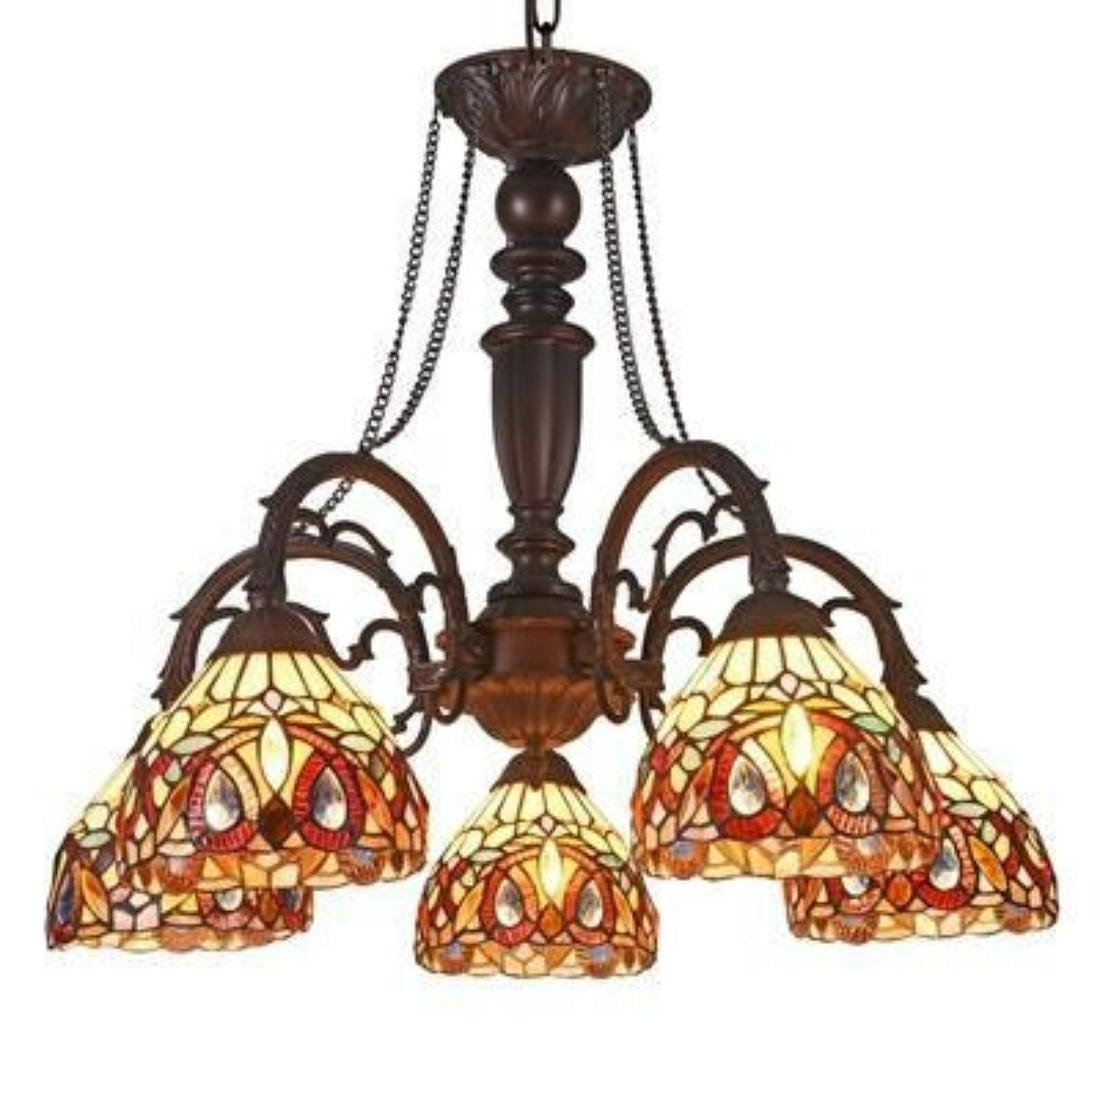 Tiffany-style 5 Light Victorian Large Chandelier 27""